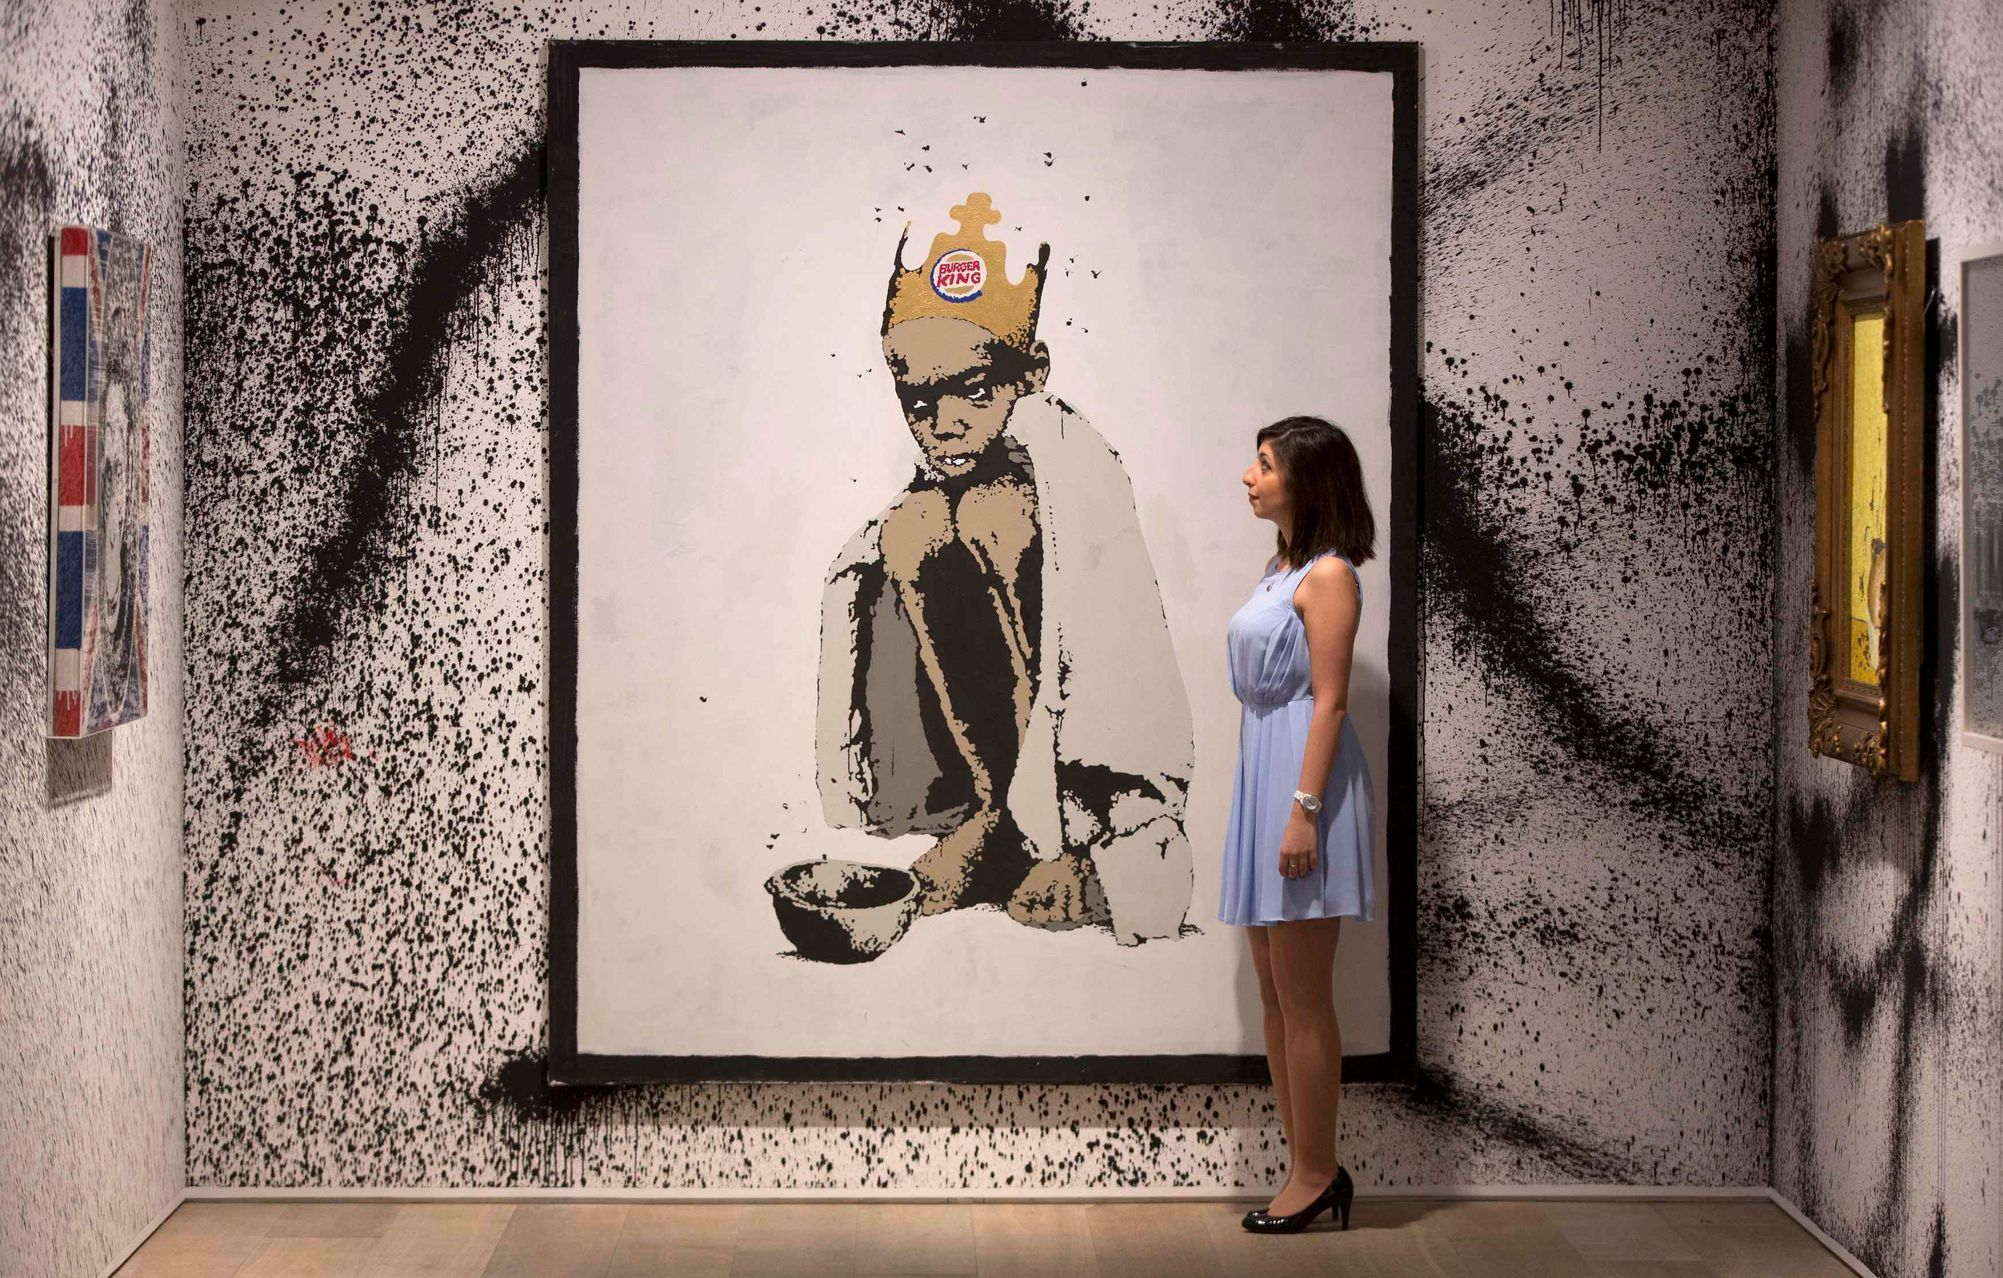 A gallery assistant poses with Banksy painting at Banksy: The Unauthorised Retrospective exhibition at Sotheby's S2 Gallery in London